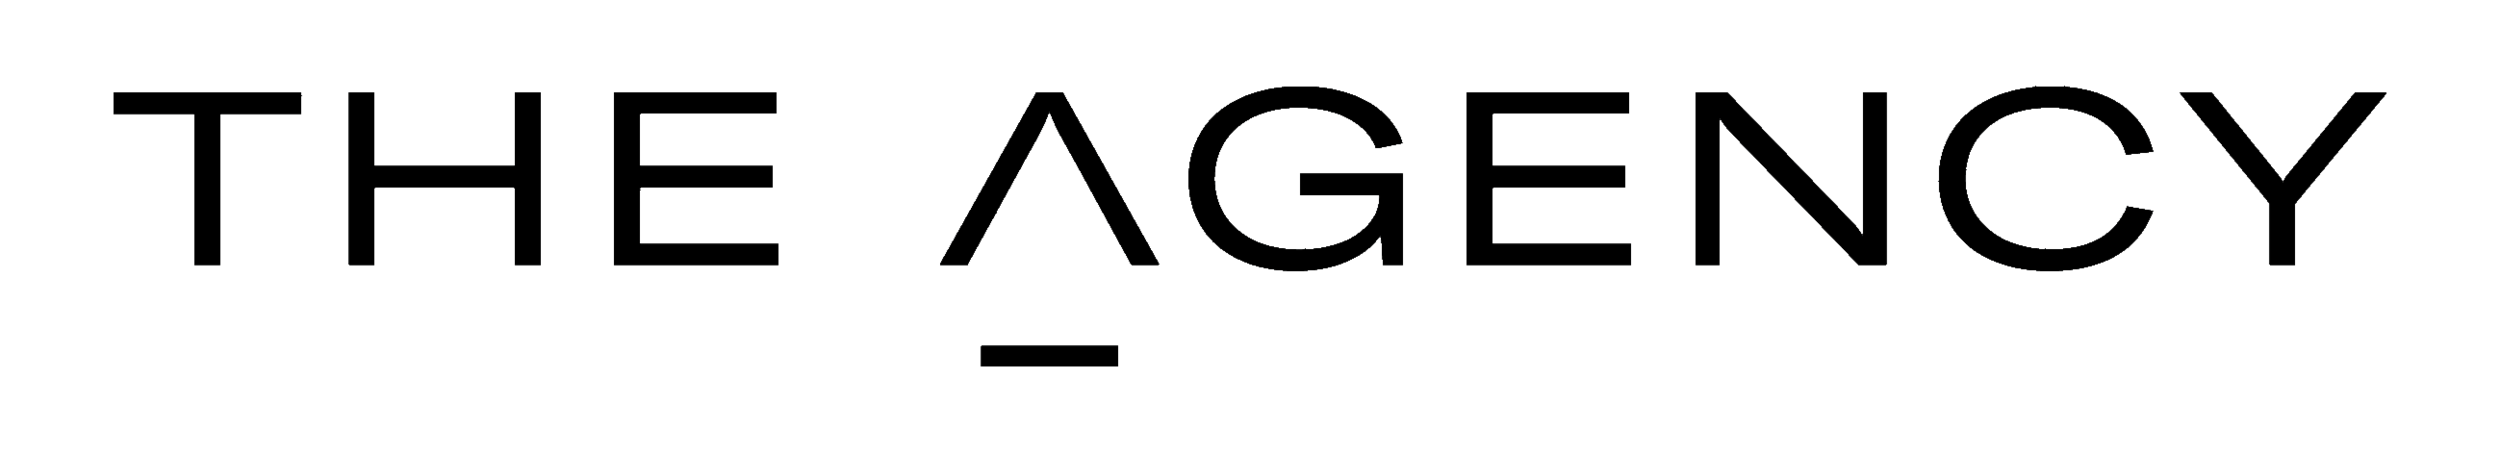 THE AGENCY_LOGO 2017 2.png